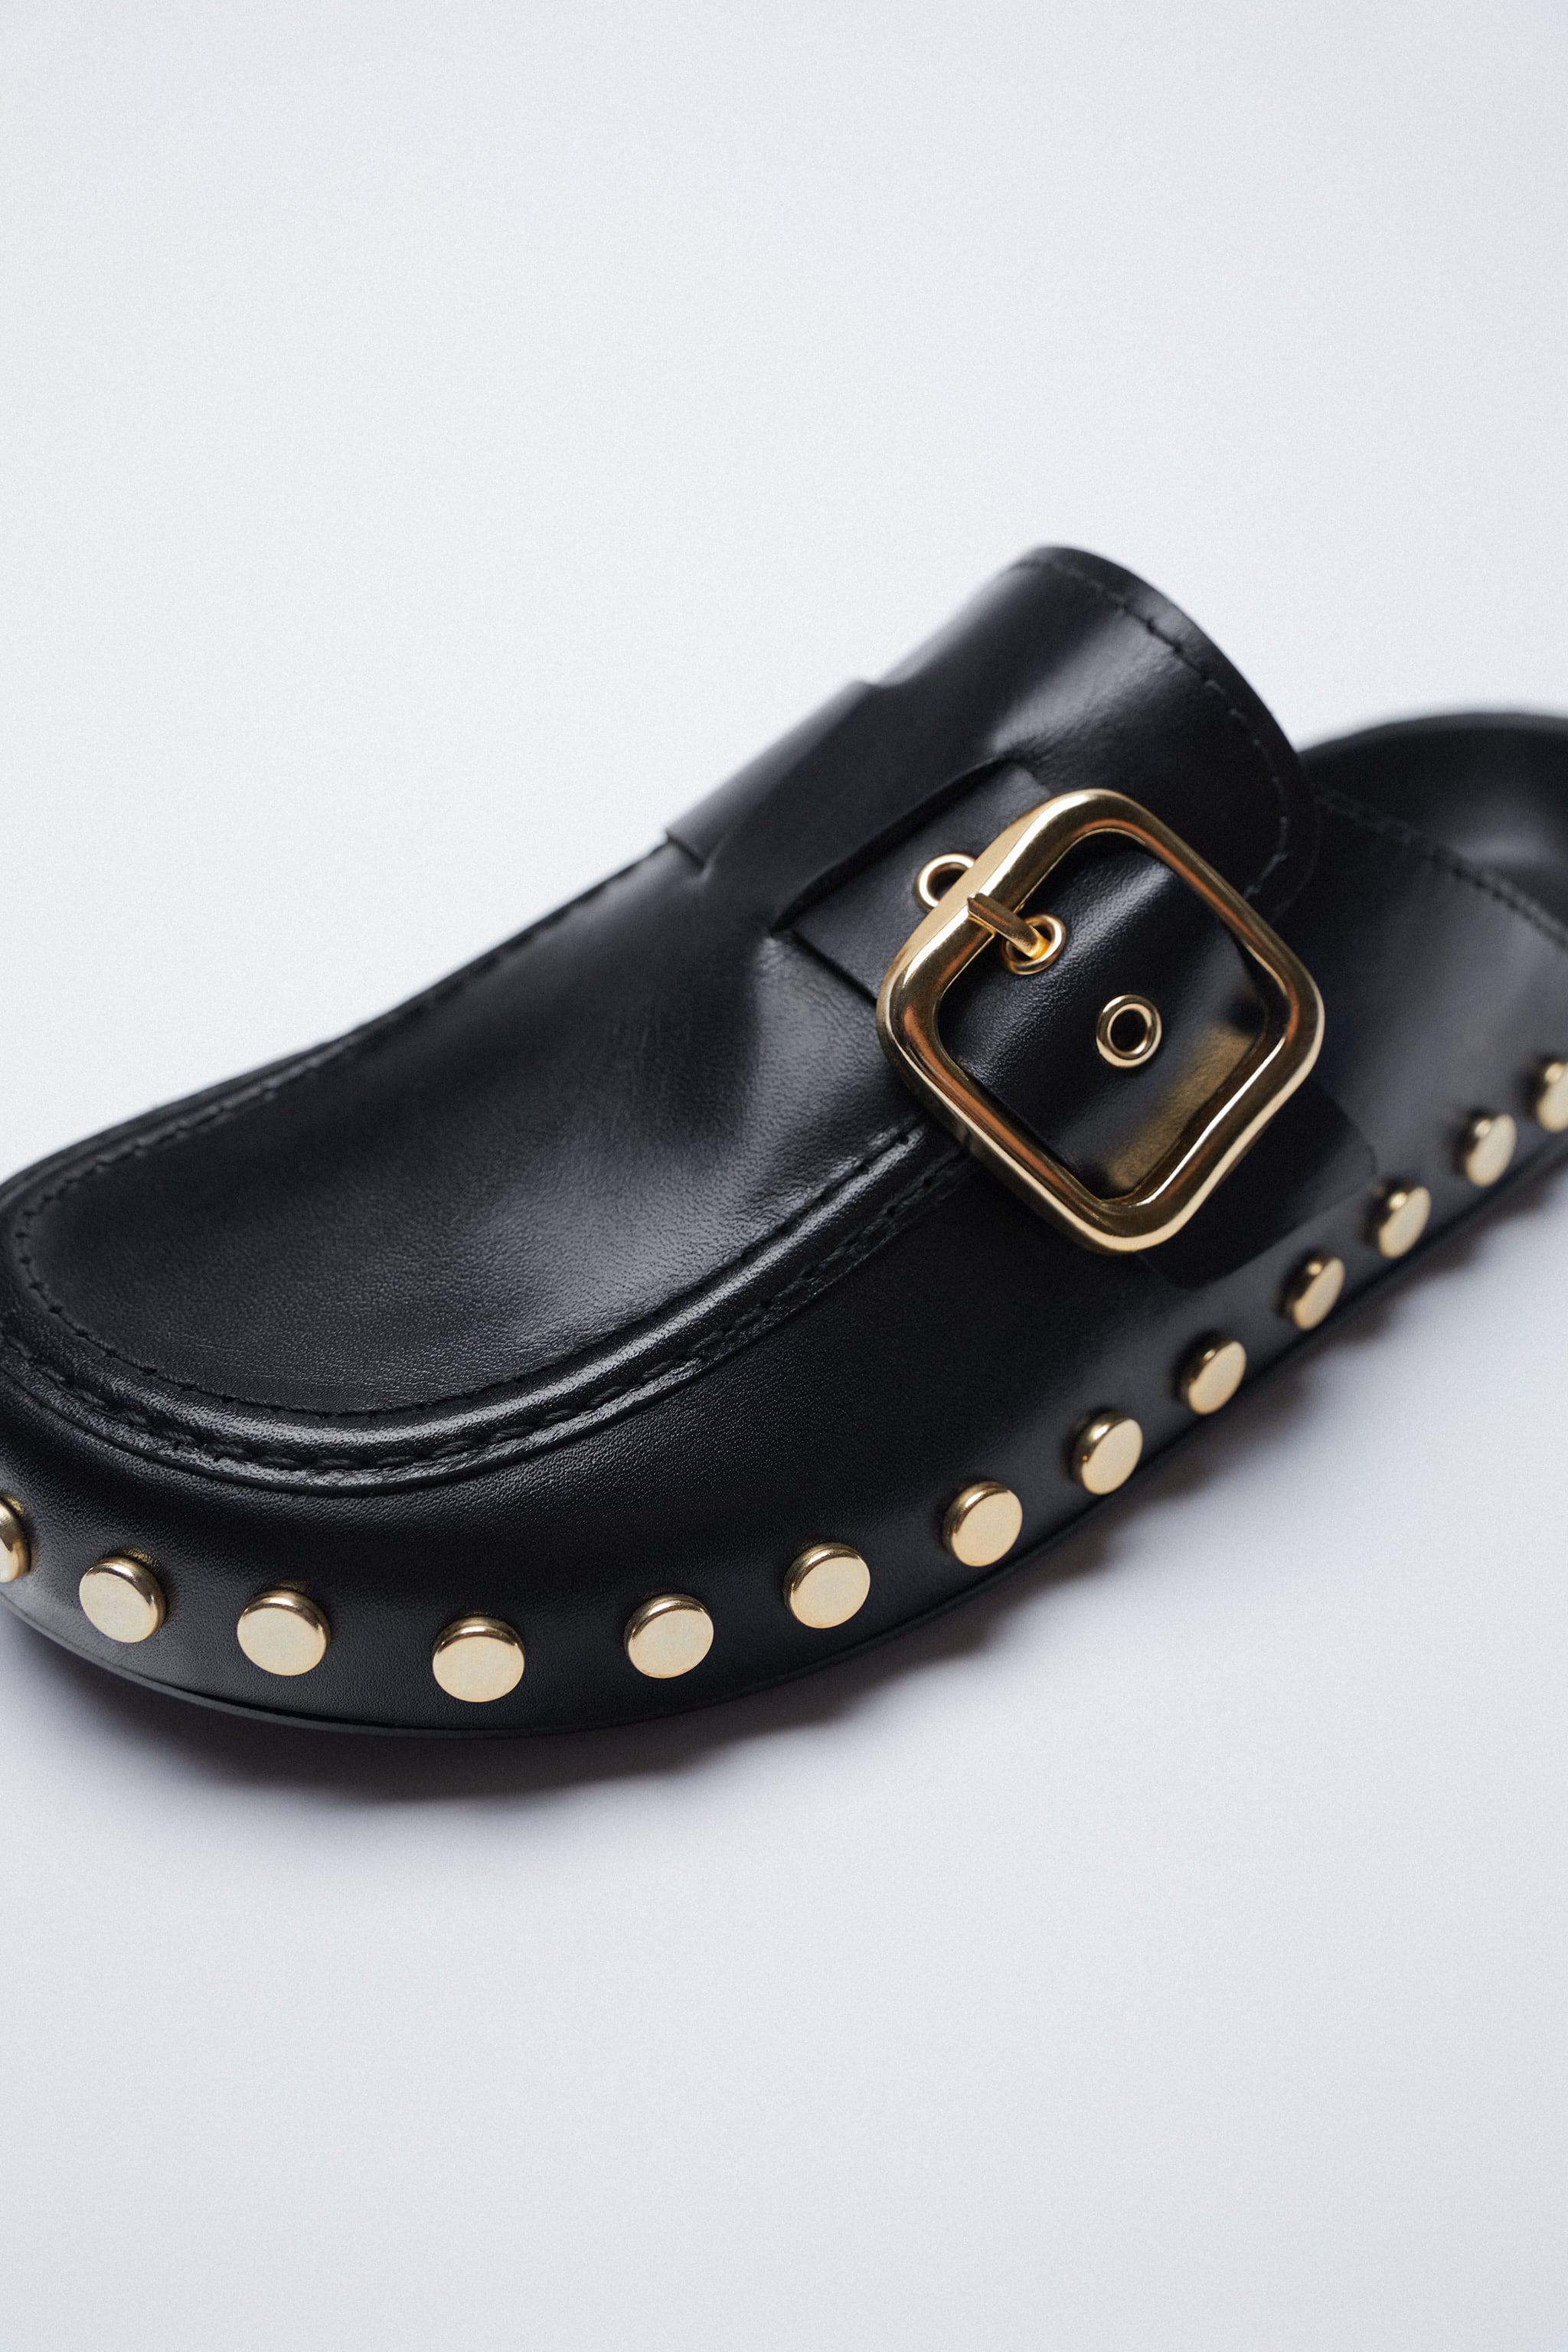 LOW HEEL LEATHER CLOGS WITH STUDS 4